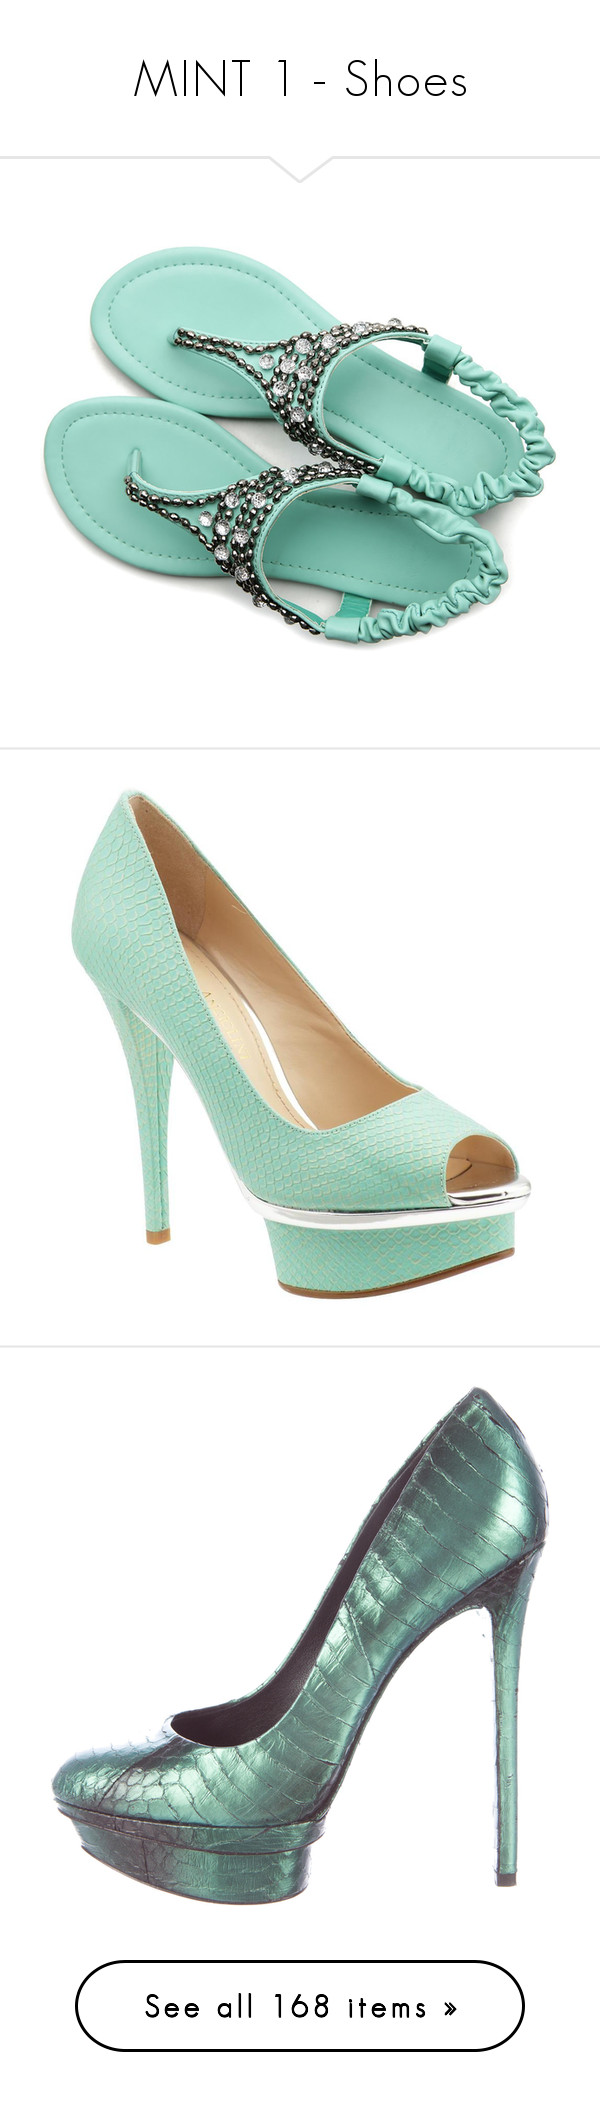 """MINT 1 - Shoes"" by franceseattle ❤ liked on Polyvore featuring shoes, sandals, flip flops, strap flip flops, strap shoes, strappy sandals, strap sandals, strappy shoes, mint and leather slip on shoes"